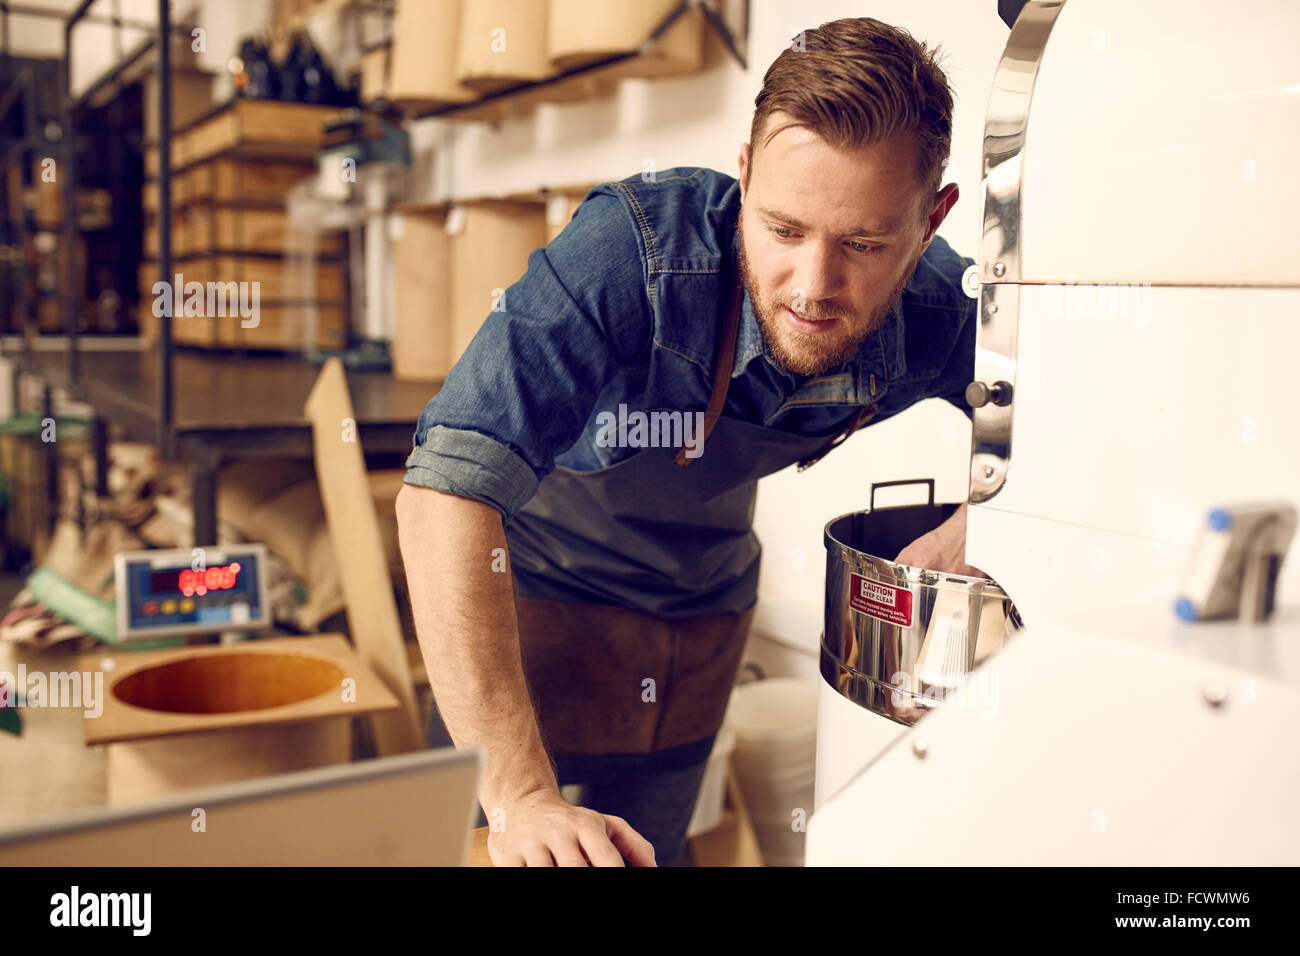 Man checking his laptop while operating a modern coffee roaster - Stock Image